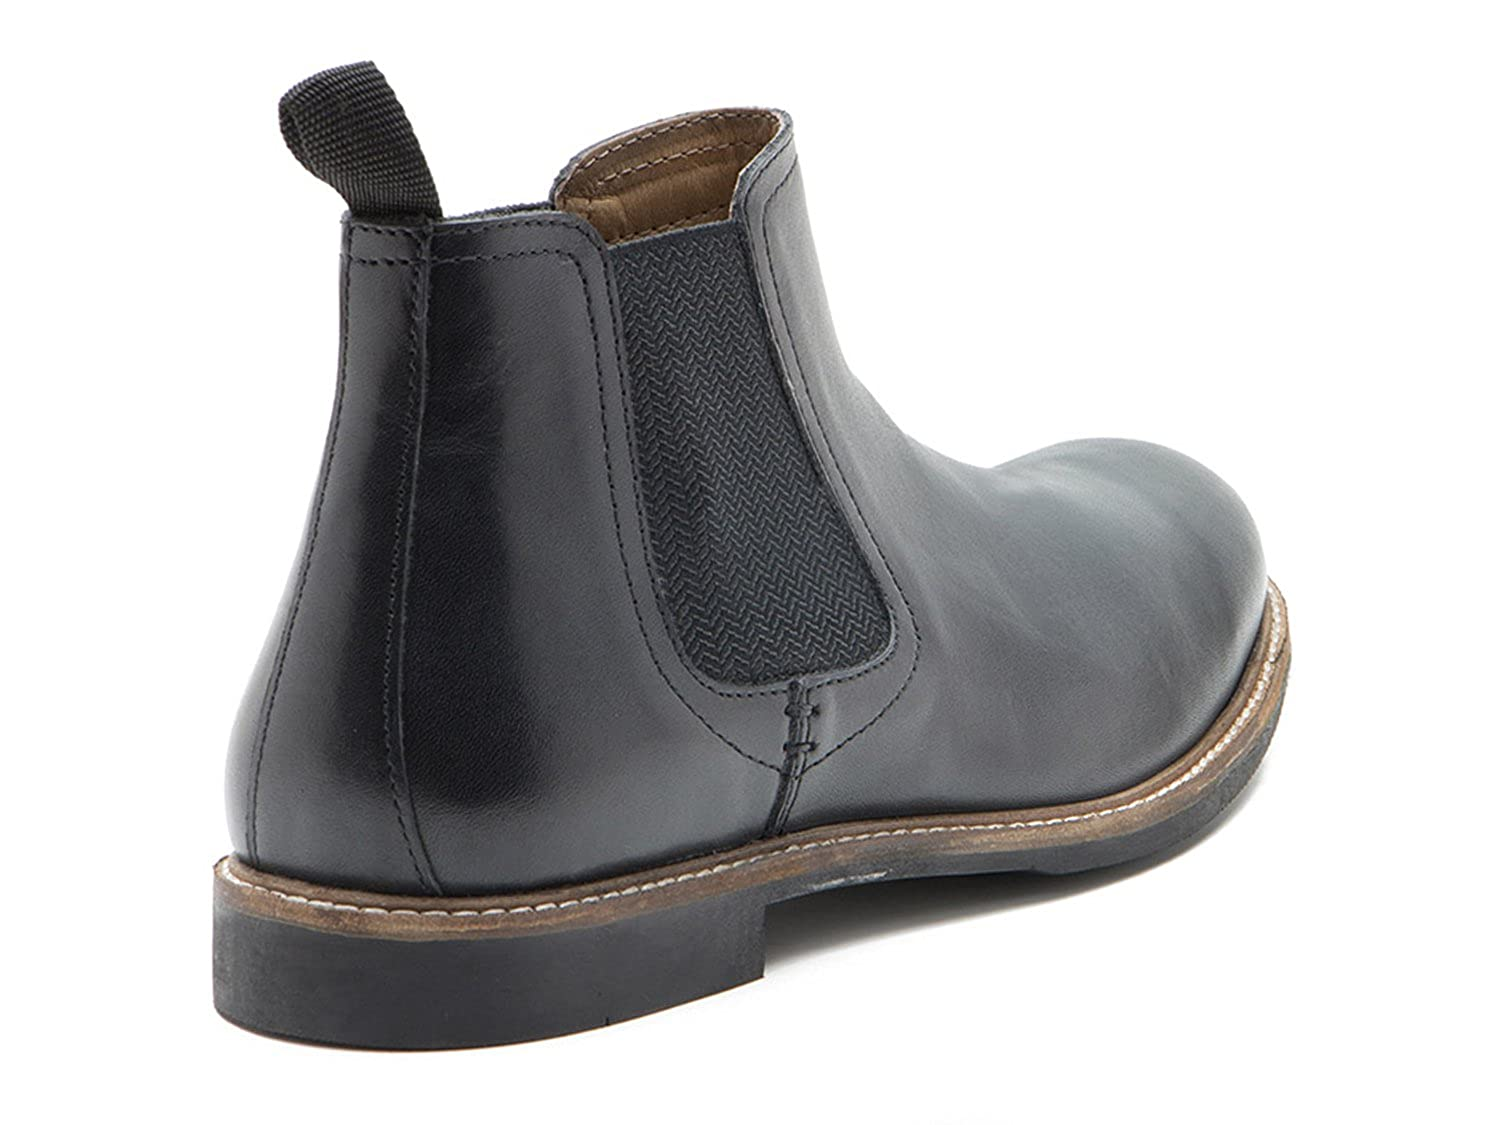 cae40acd821618 Red Tape Men s Morley Chelsea Boots  Amazon.co.uk  Shoes   Bags